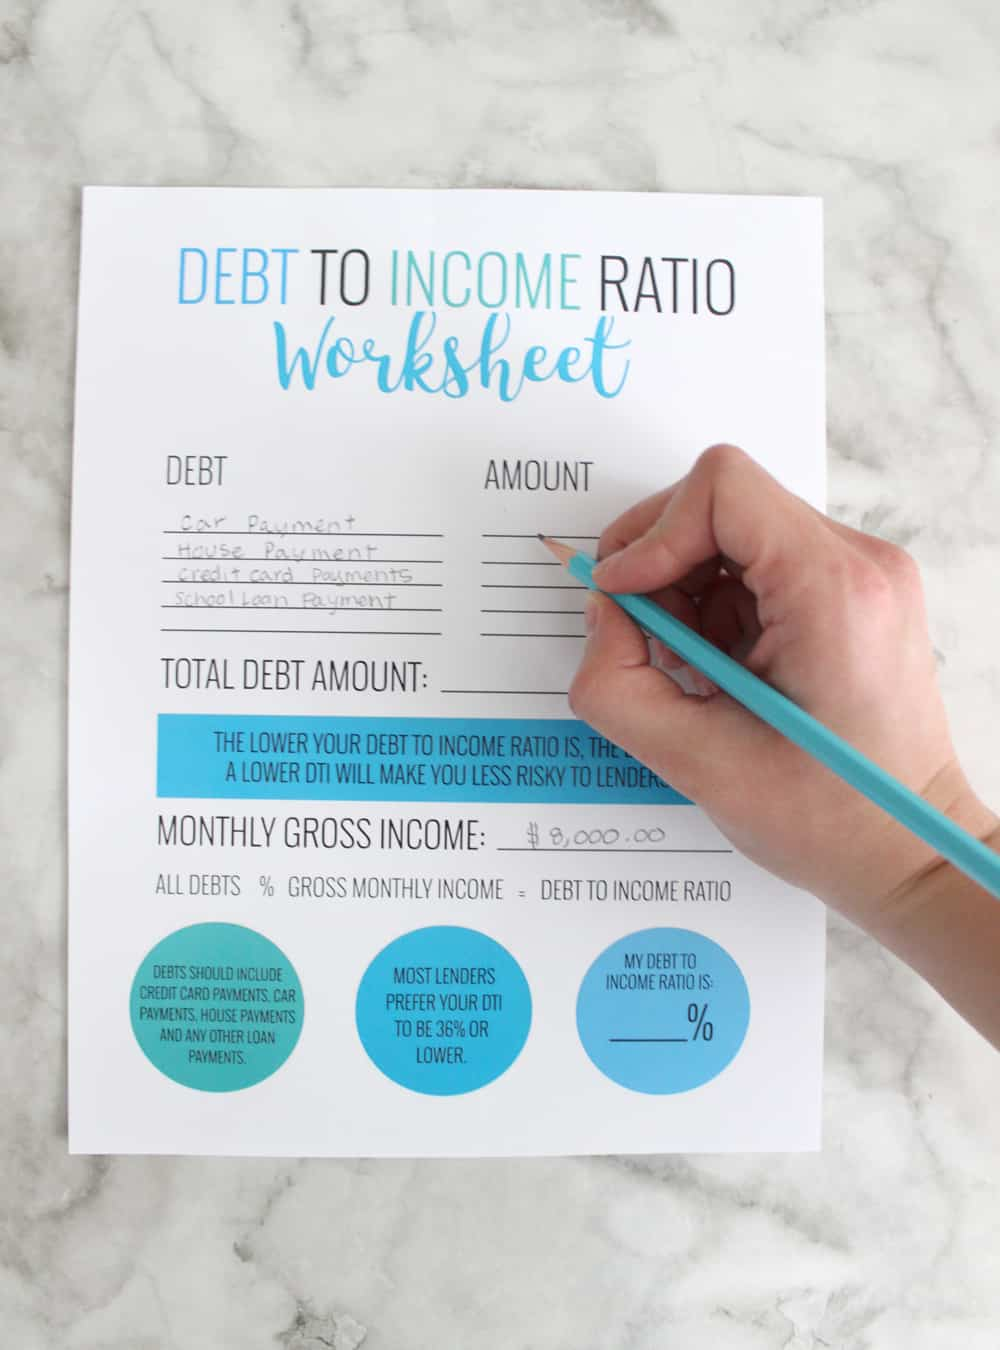 A person filling out their debt to income worksheet in order to determine DTI.